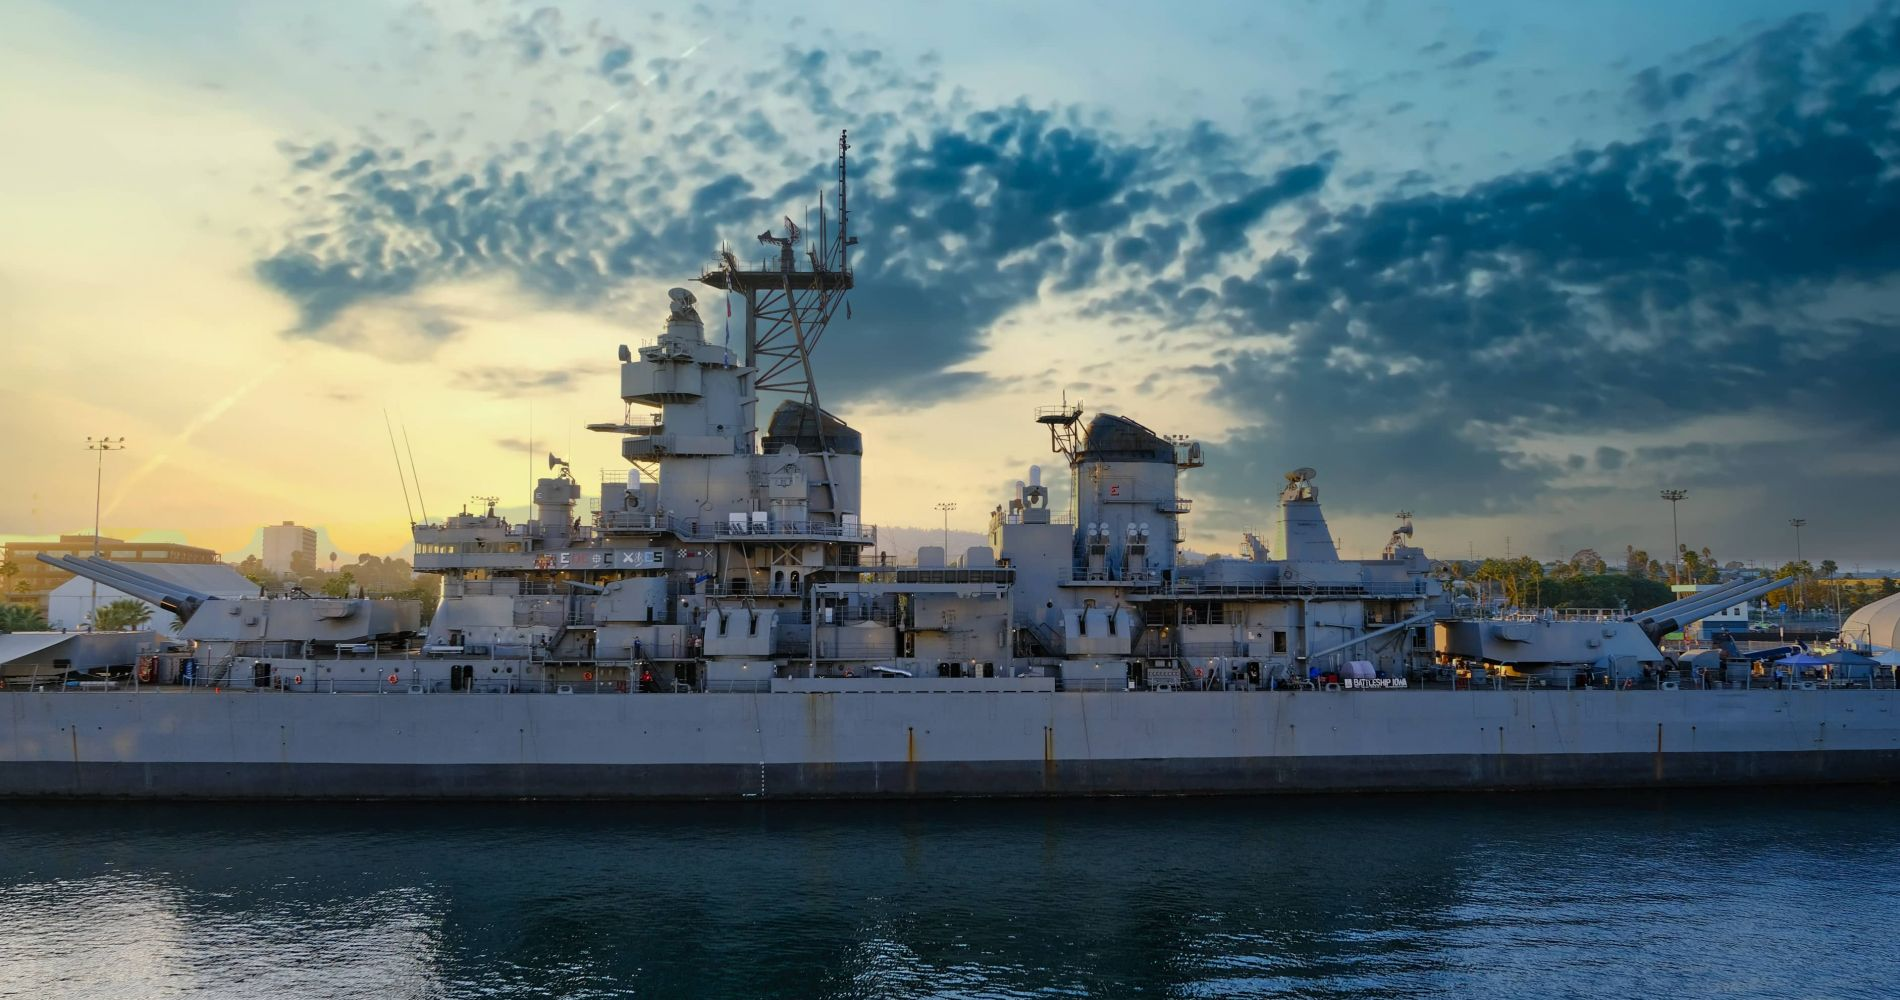 Battleship IOWA Museum and other attractions in LA